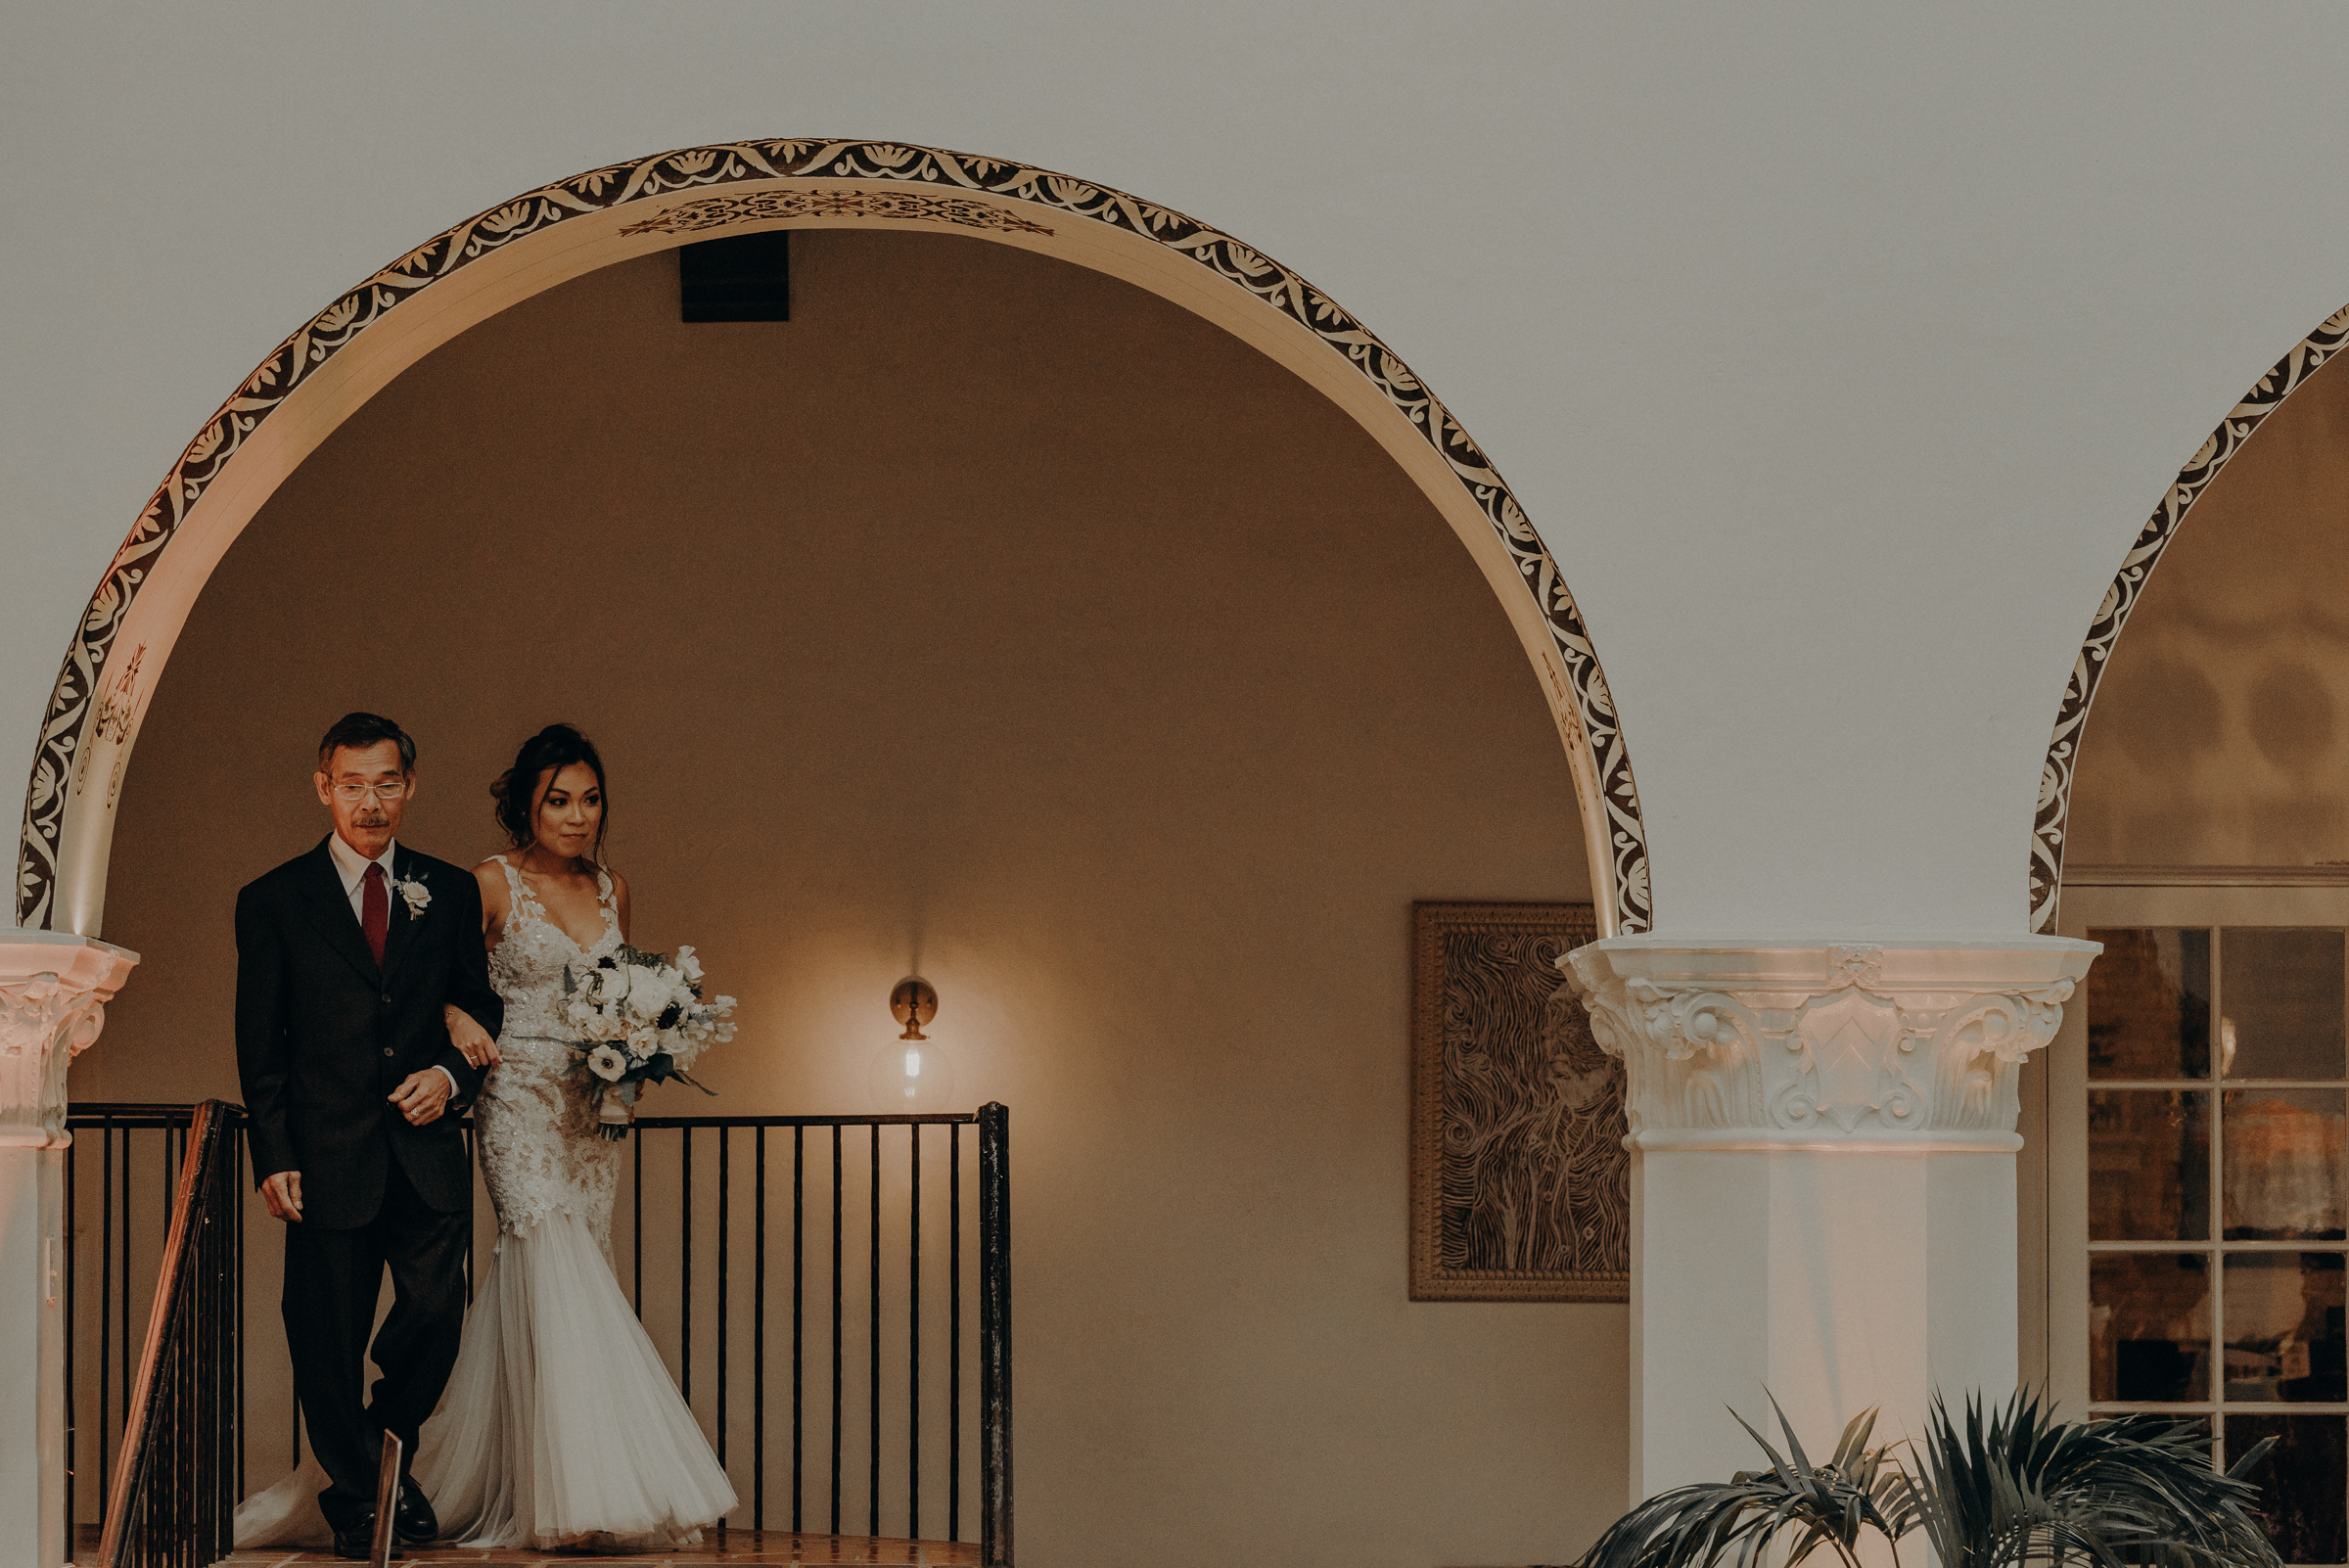 Los Angeles Wedding Photographer - IsaiahAndTaylor.com - The Ebell of Long Beach Wedding-100.jpg